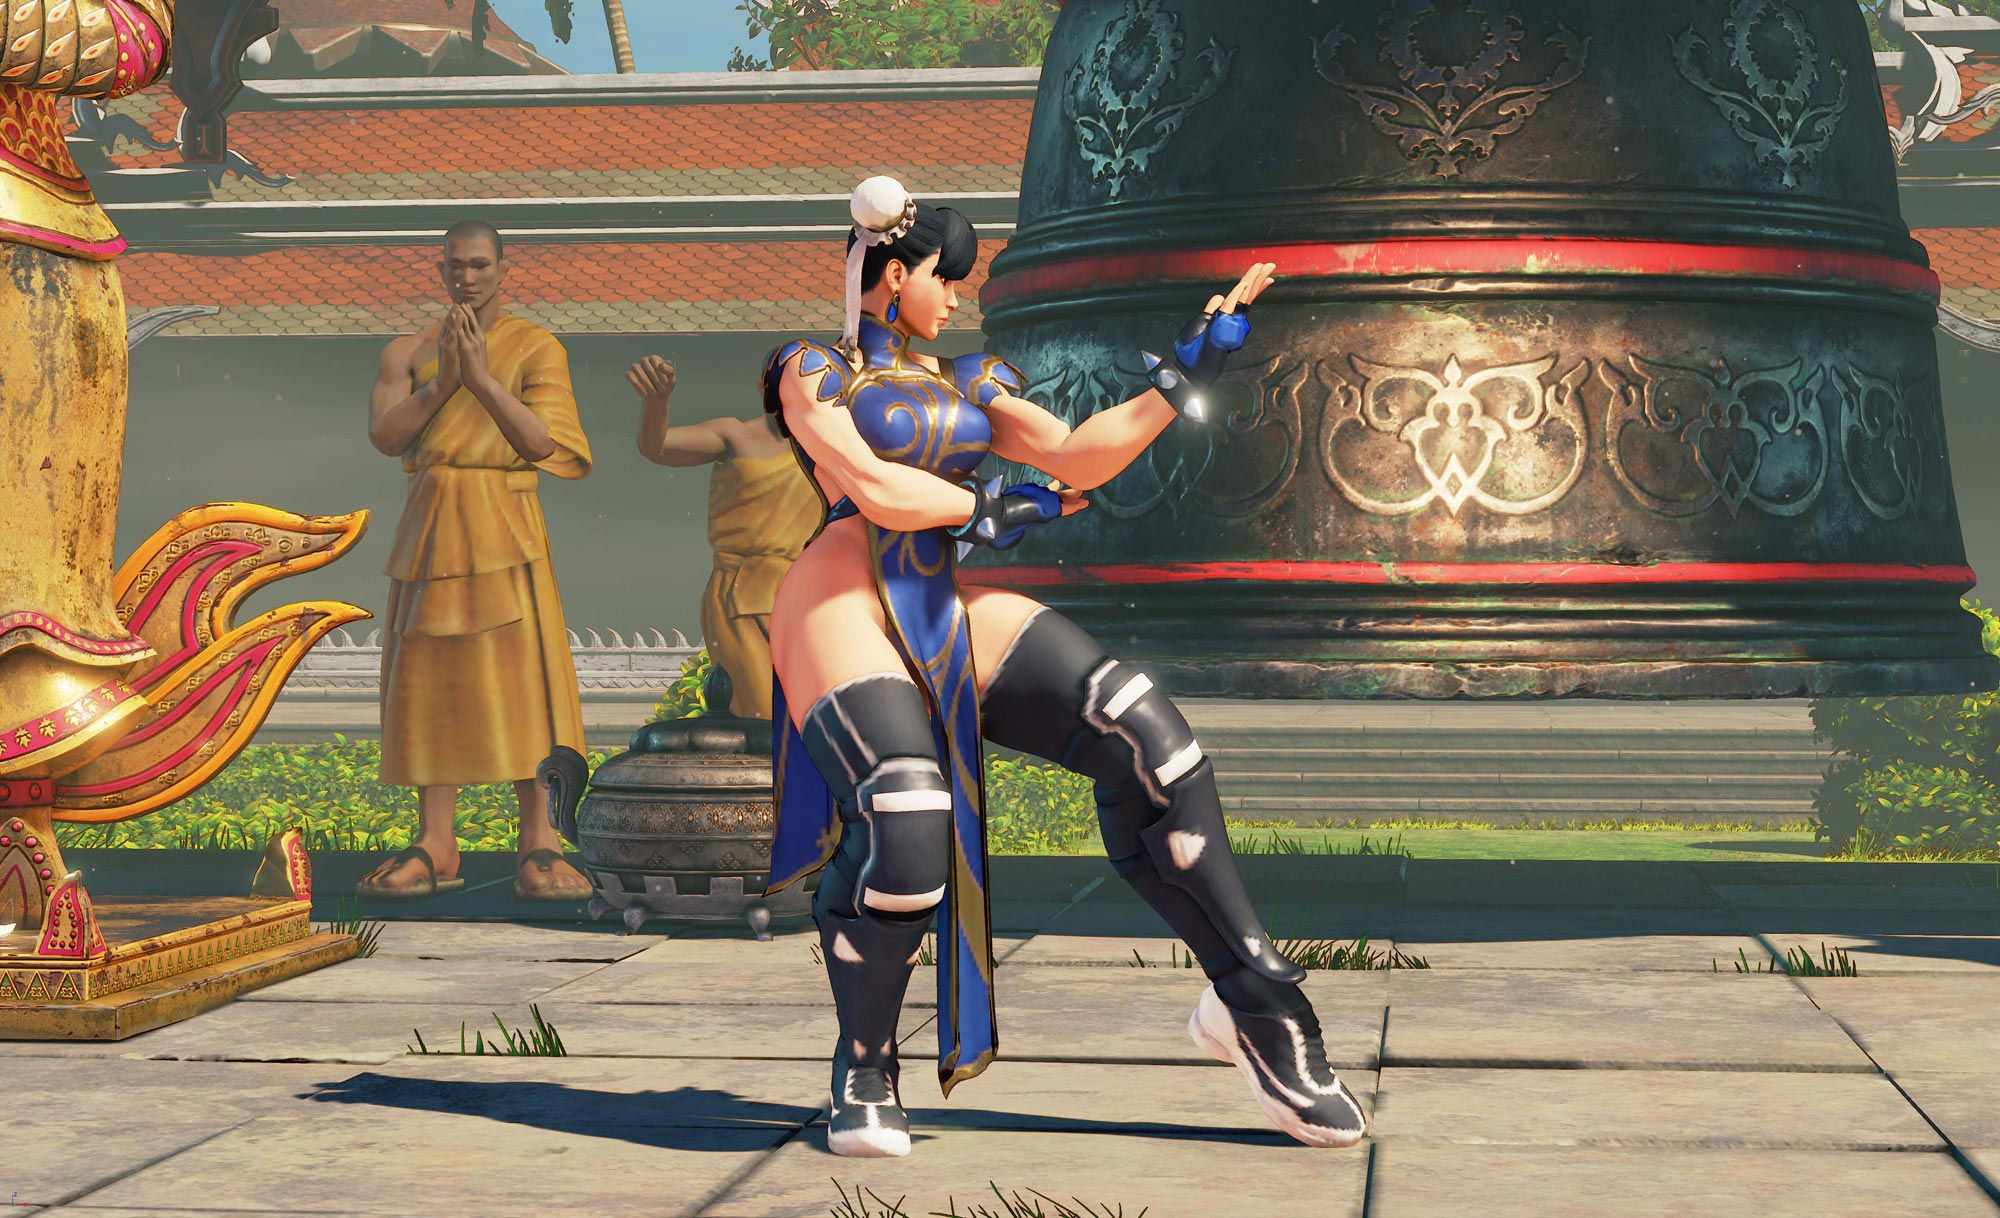 New Street Fighter 5 costumes 9 out of 10 image gallery